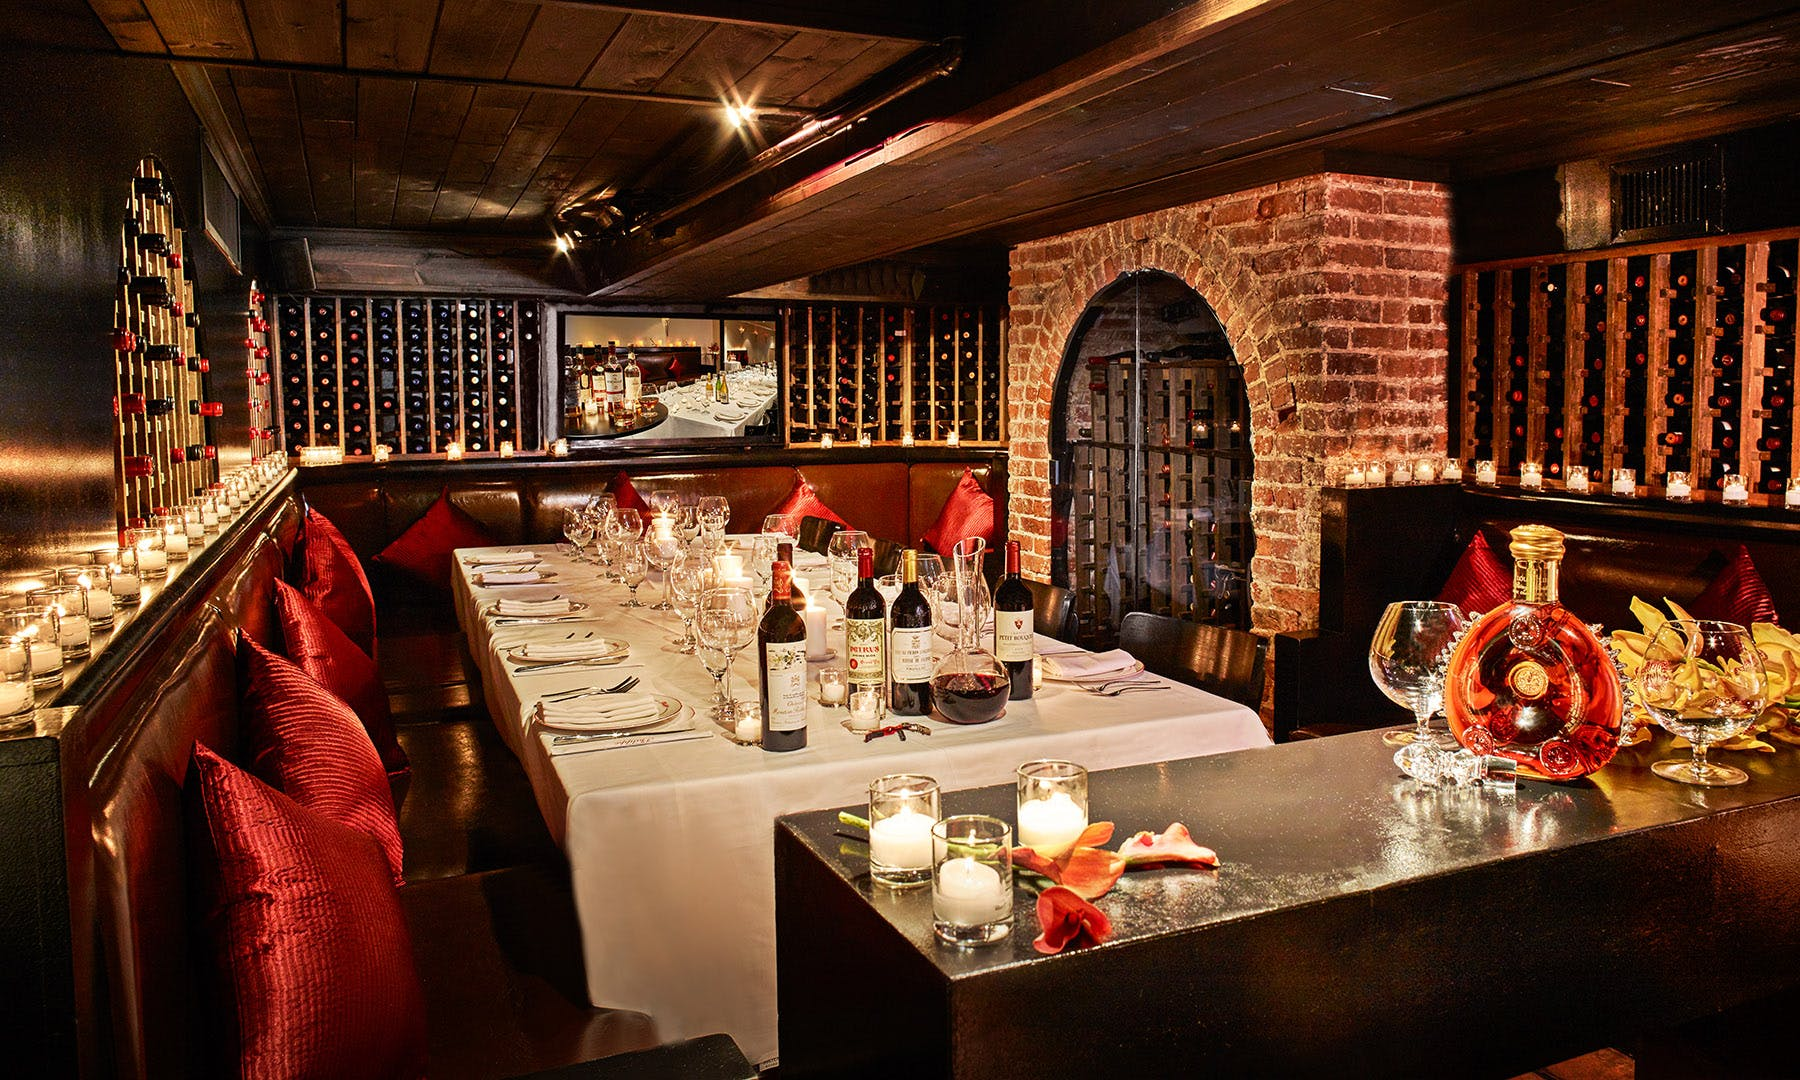 Wine Cellar Room - Philippe Uptown